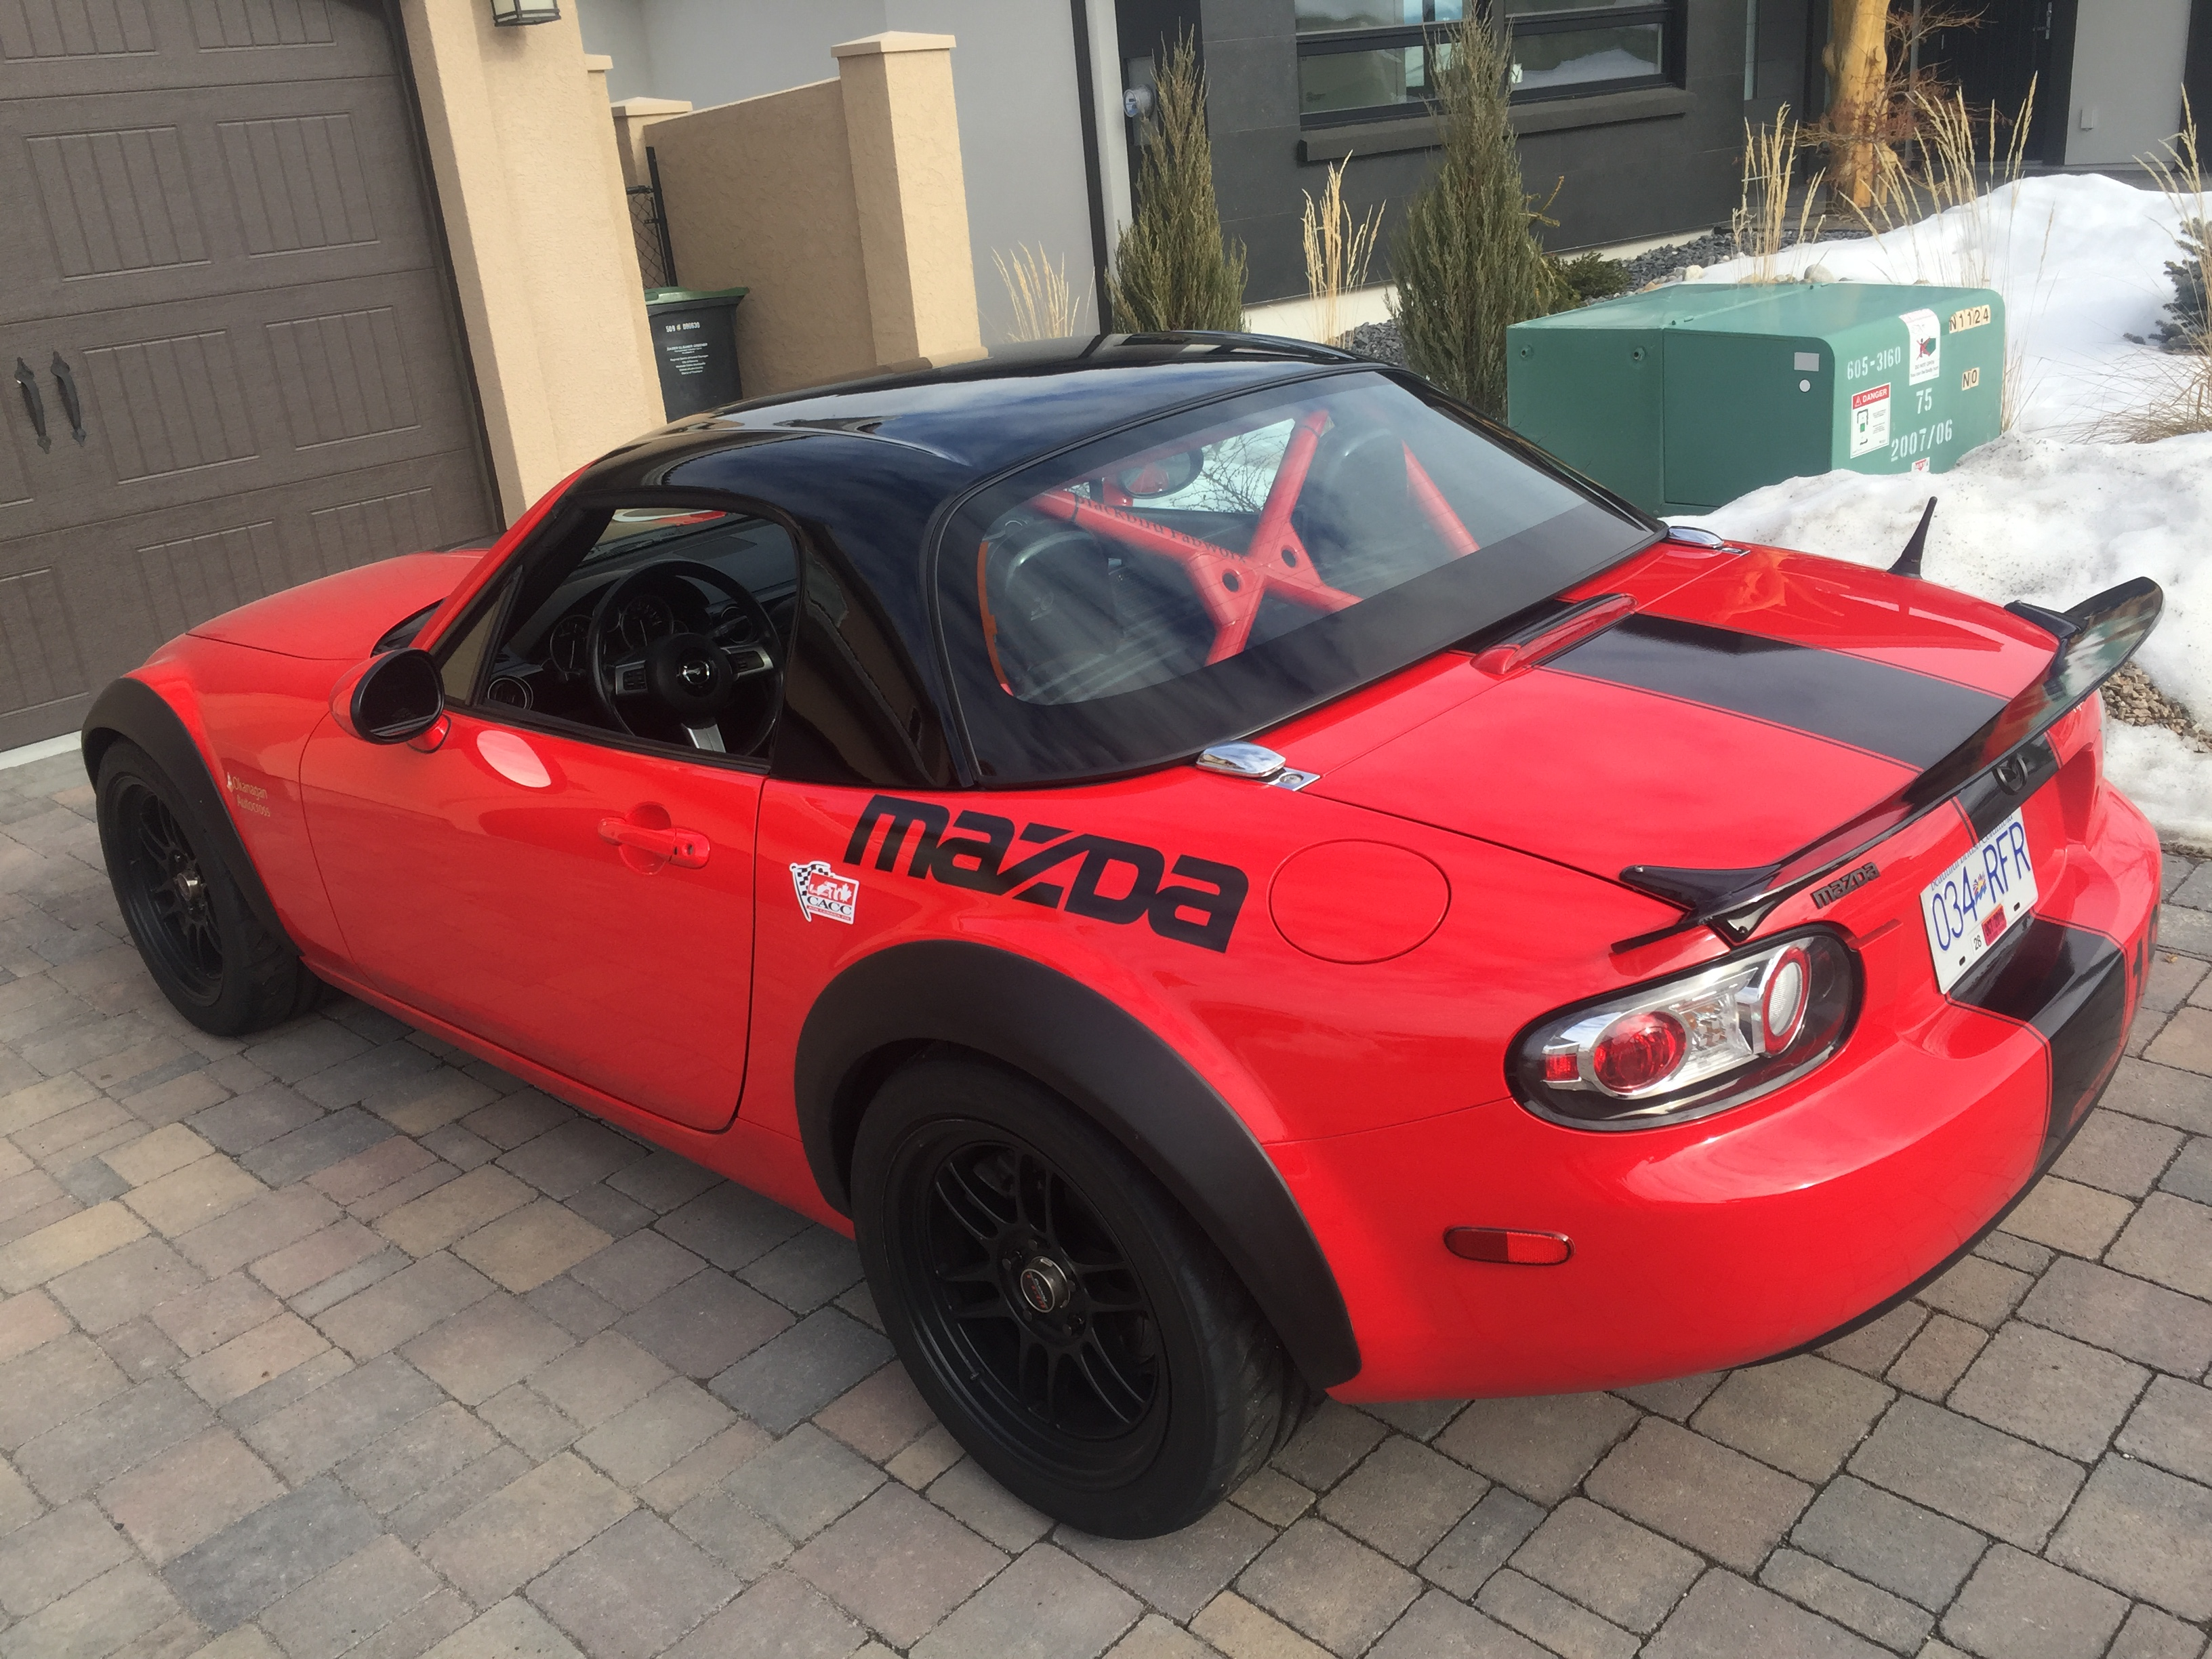 2006 Mazda Mx5 Track Day Autocross Time Attack Daily